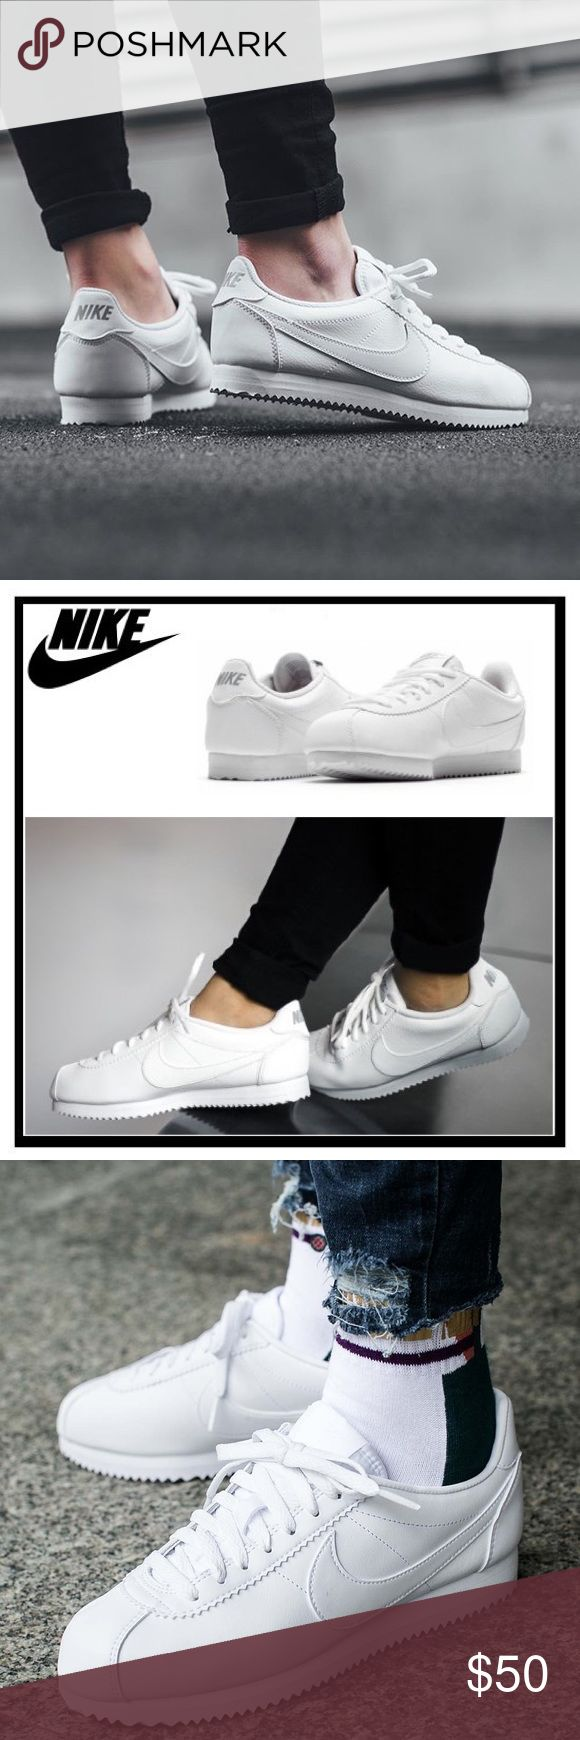 NIB Nike Cortez New All White Nike Cortez. Size 5 Youth, equivalent to a size 6.5 Women's. New in box without lid. Nike Shoes Sneakers